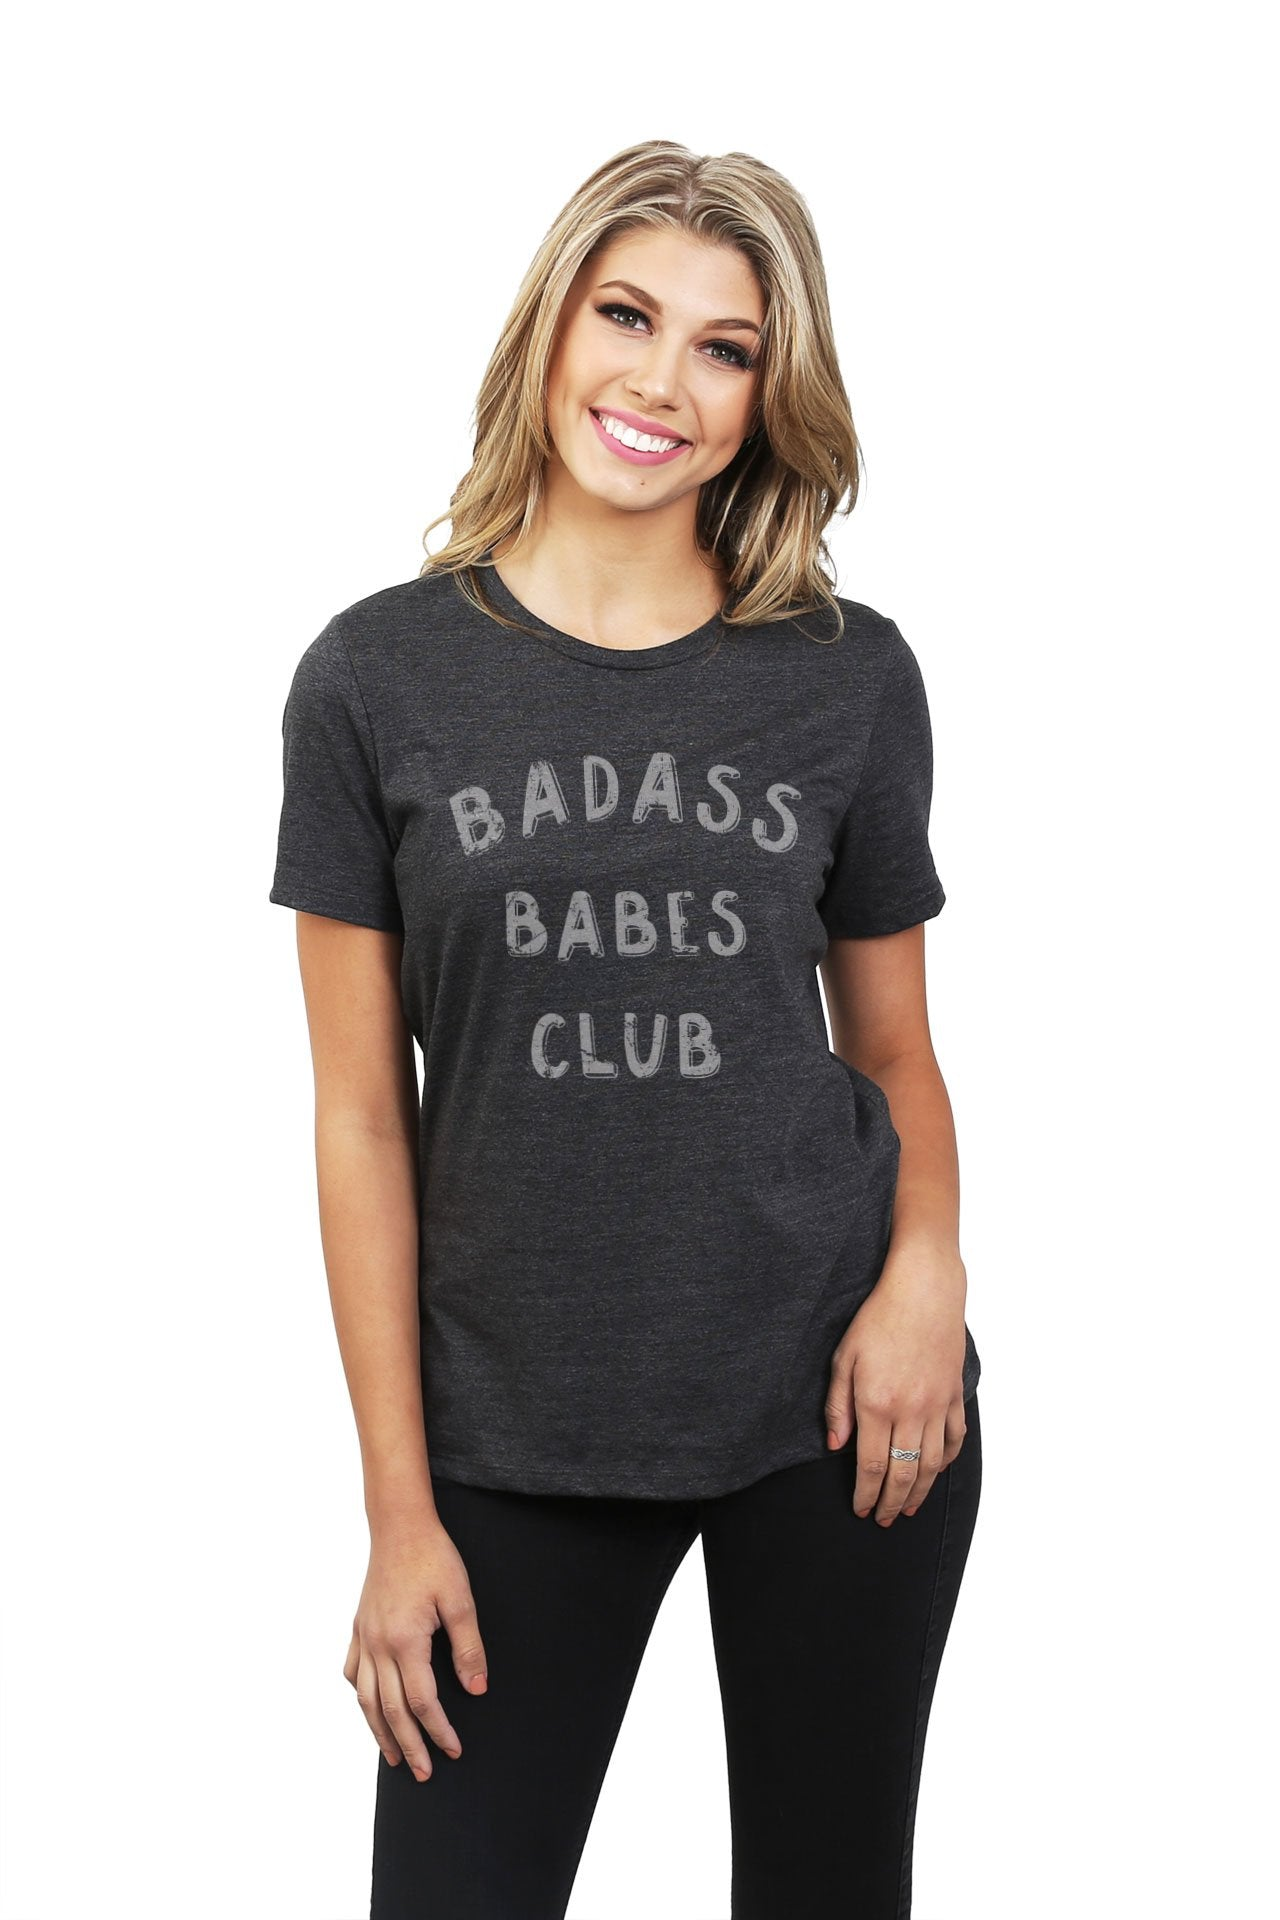 Badass BABES Club - Thread Tank | Stories You Can Wear | T-Shirts, Tank Tops and Sweatshirts